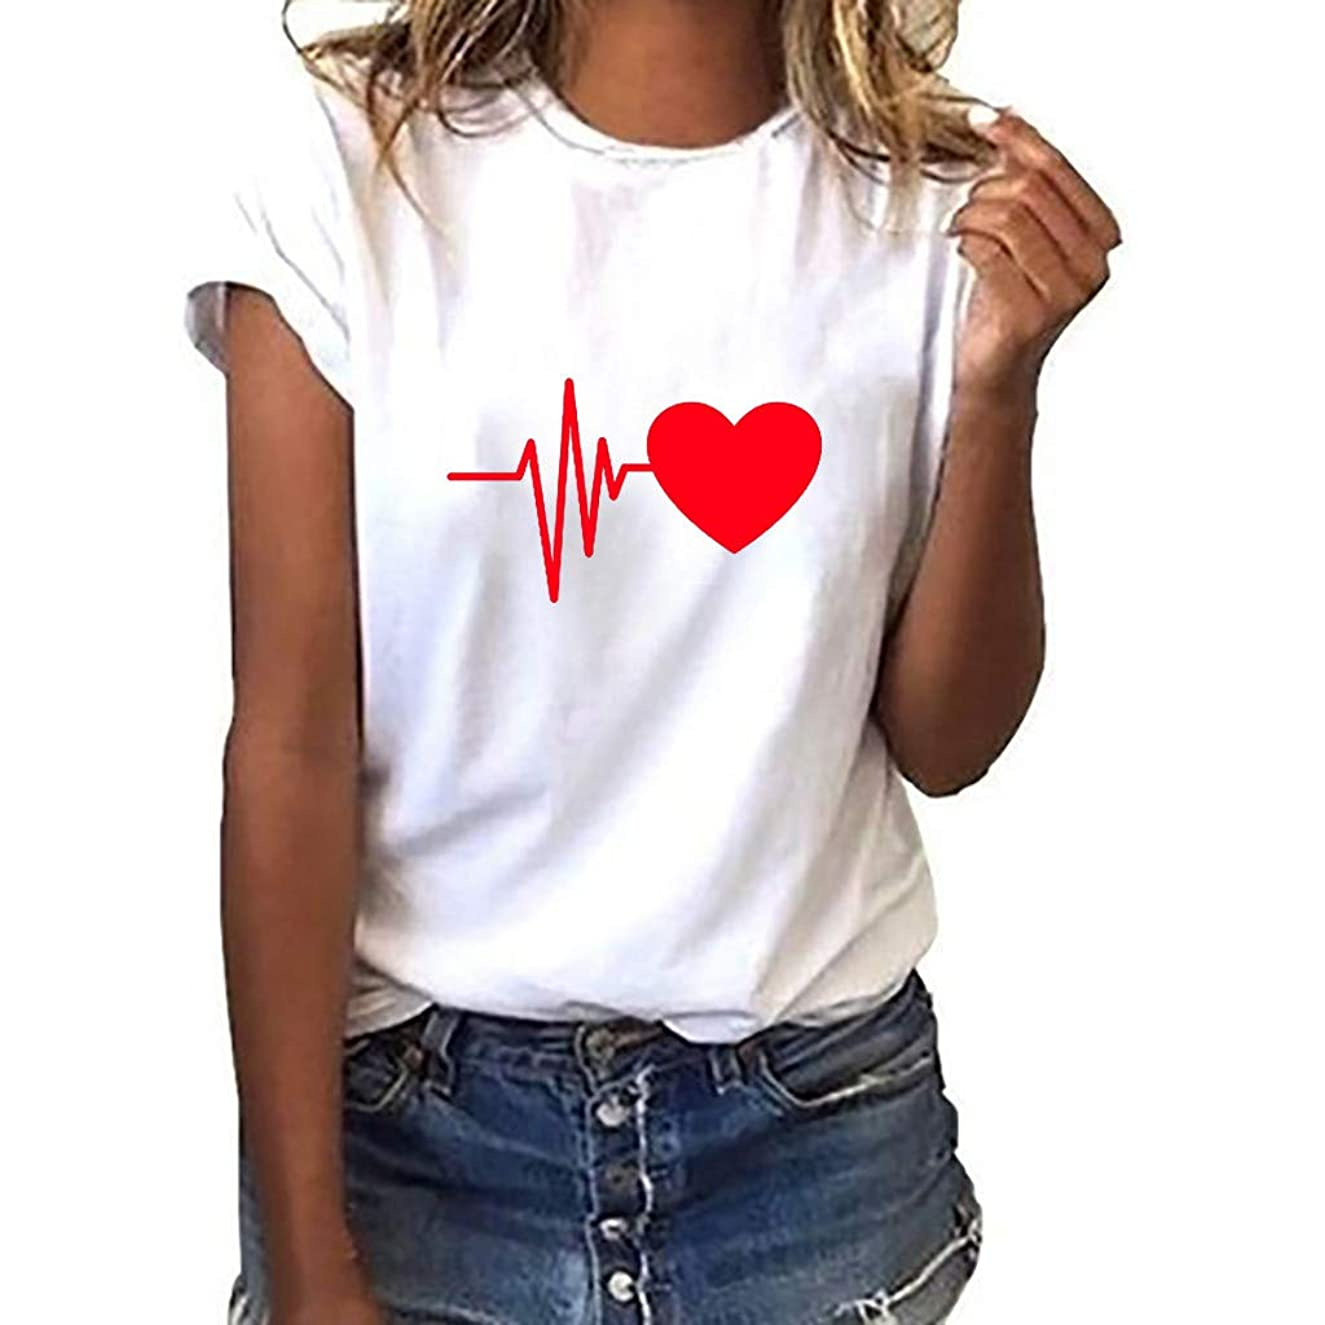 TWGONE Fashion Women's Loose Short-Sleeved Letter T-Shirt Casual O-Neck Top